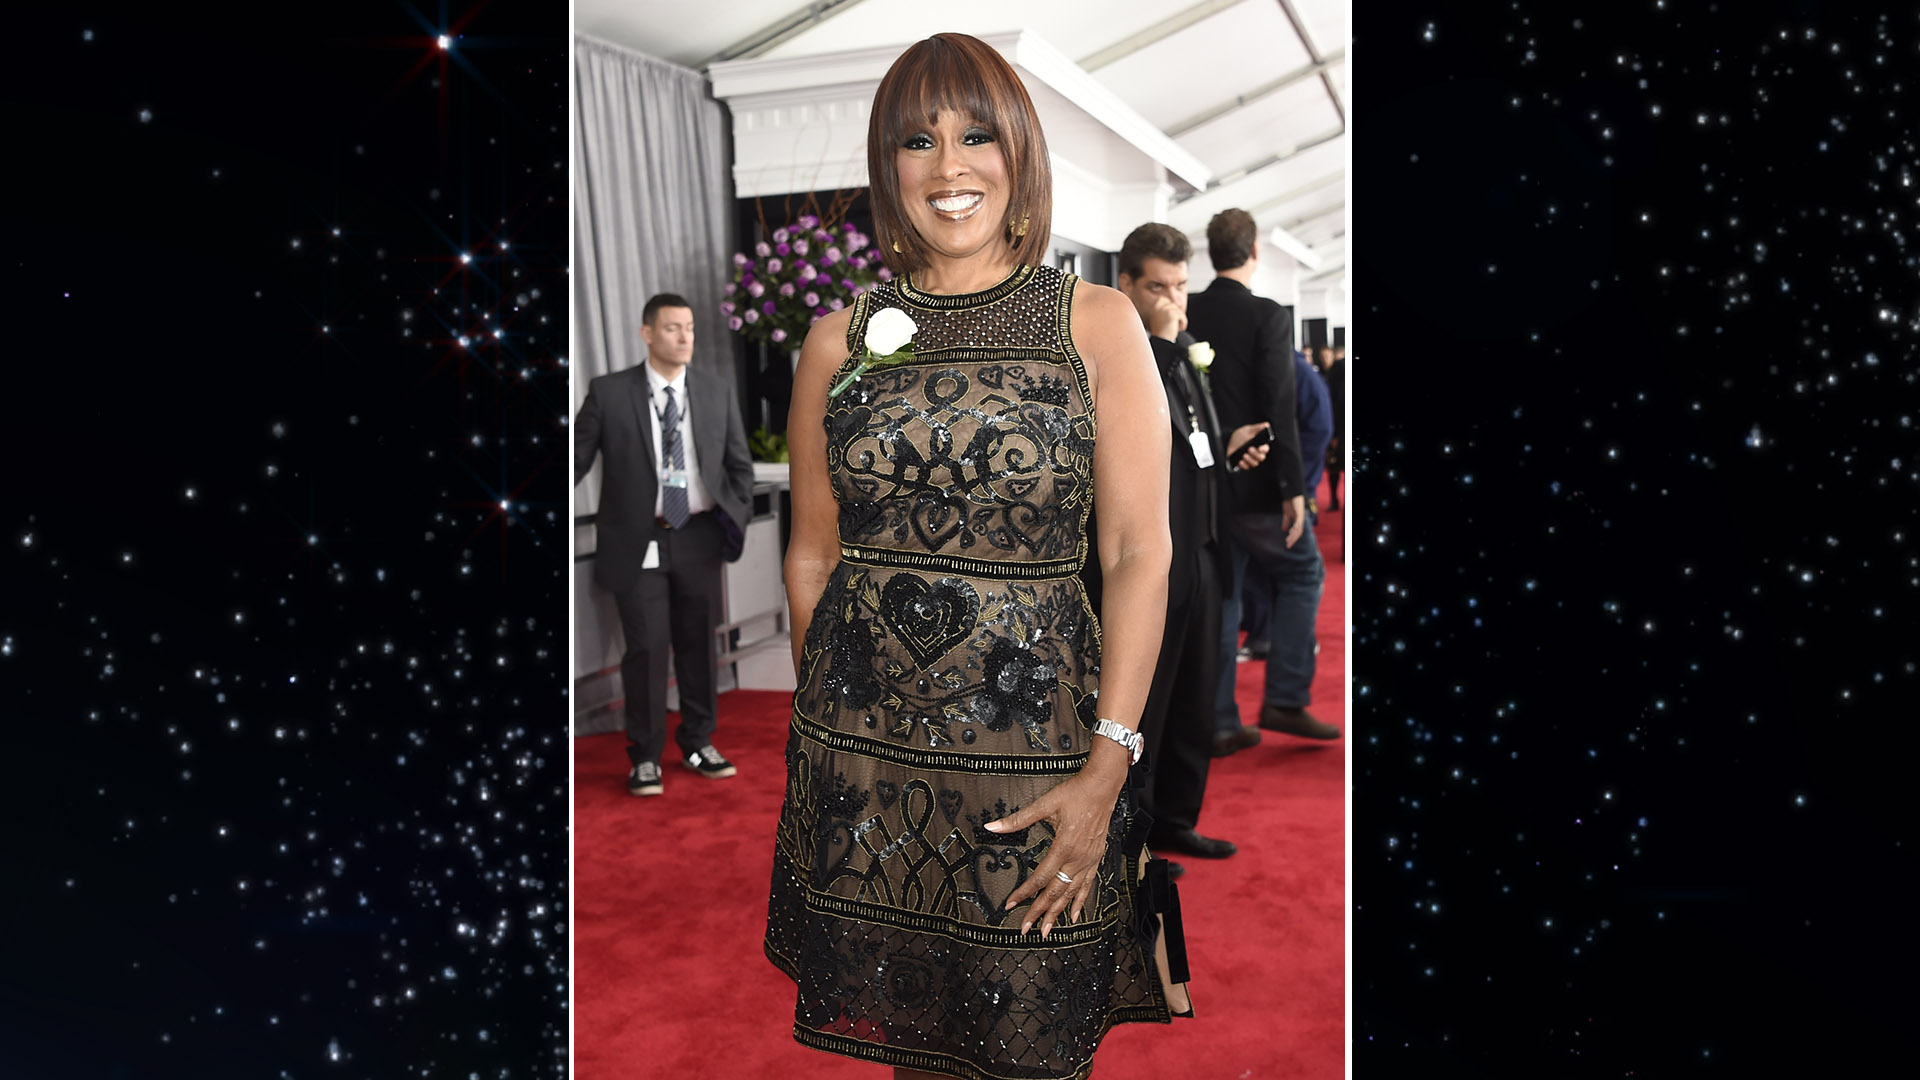 CBS This Morning co-anchor Gayle King looks chic in a sleek bob on the 60th Annual GRAMMY Awards red carpet.